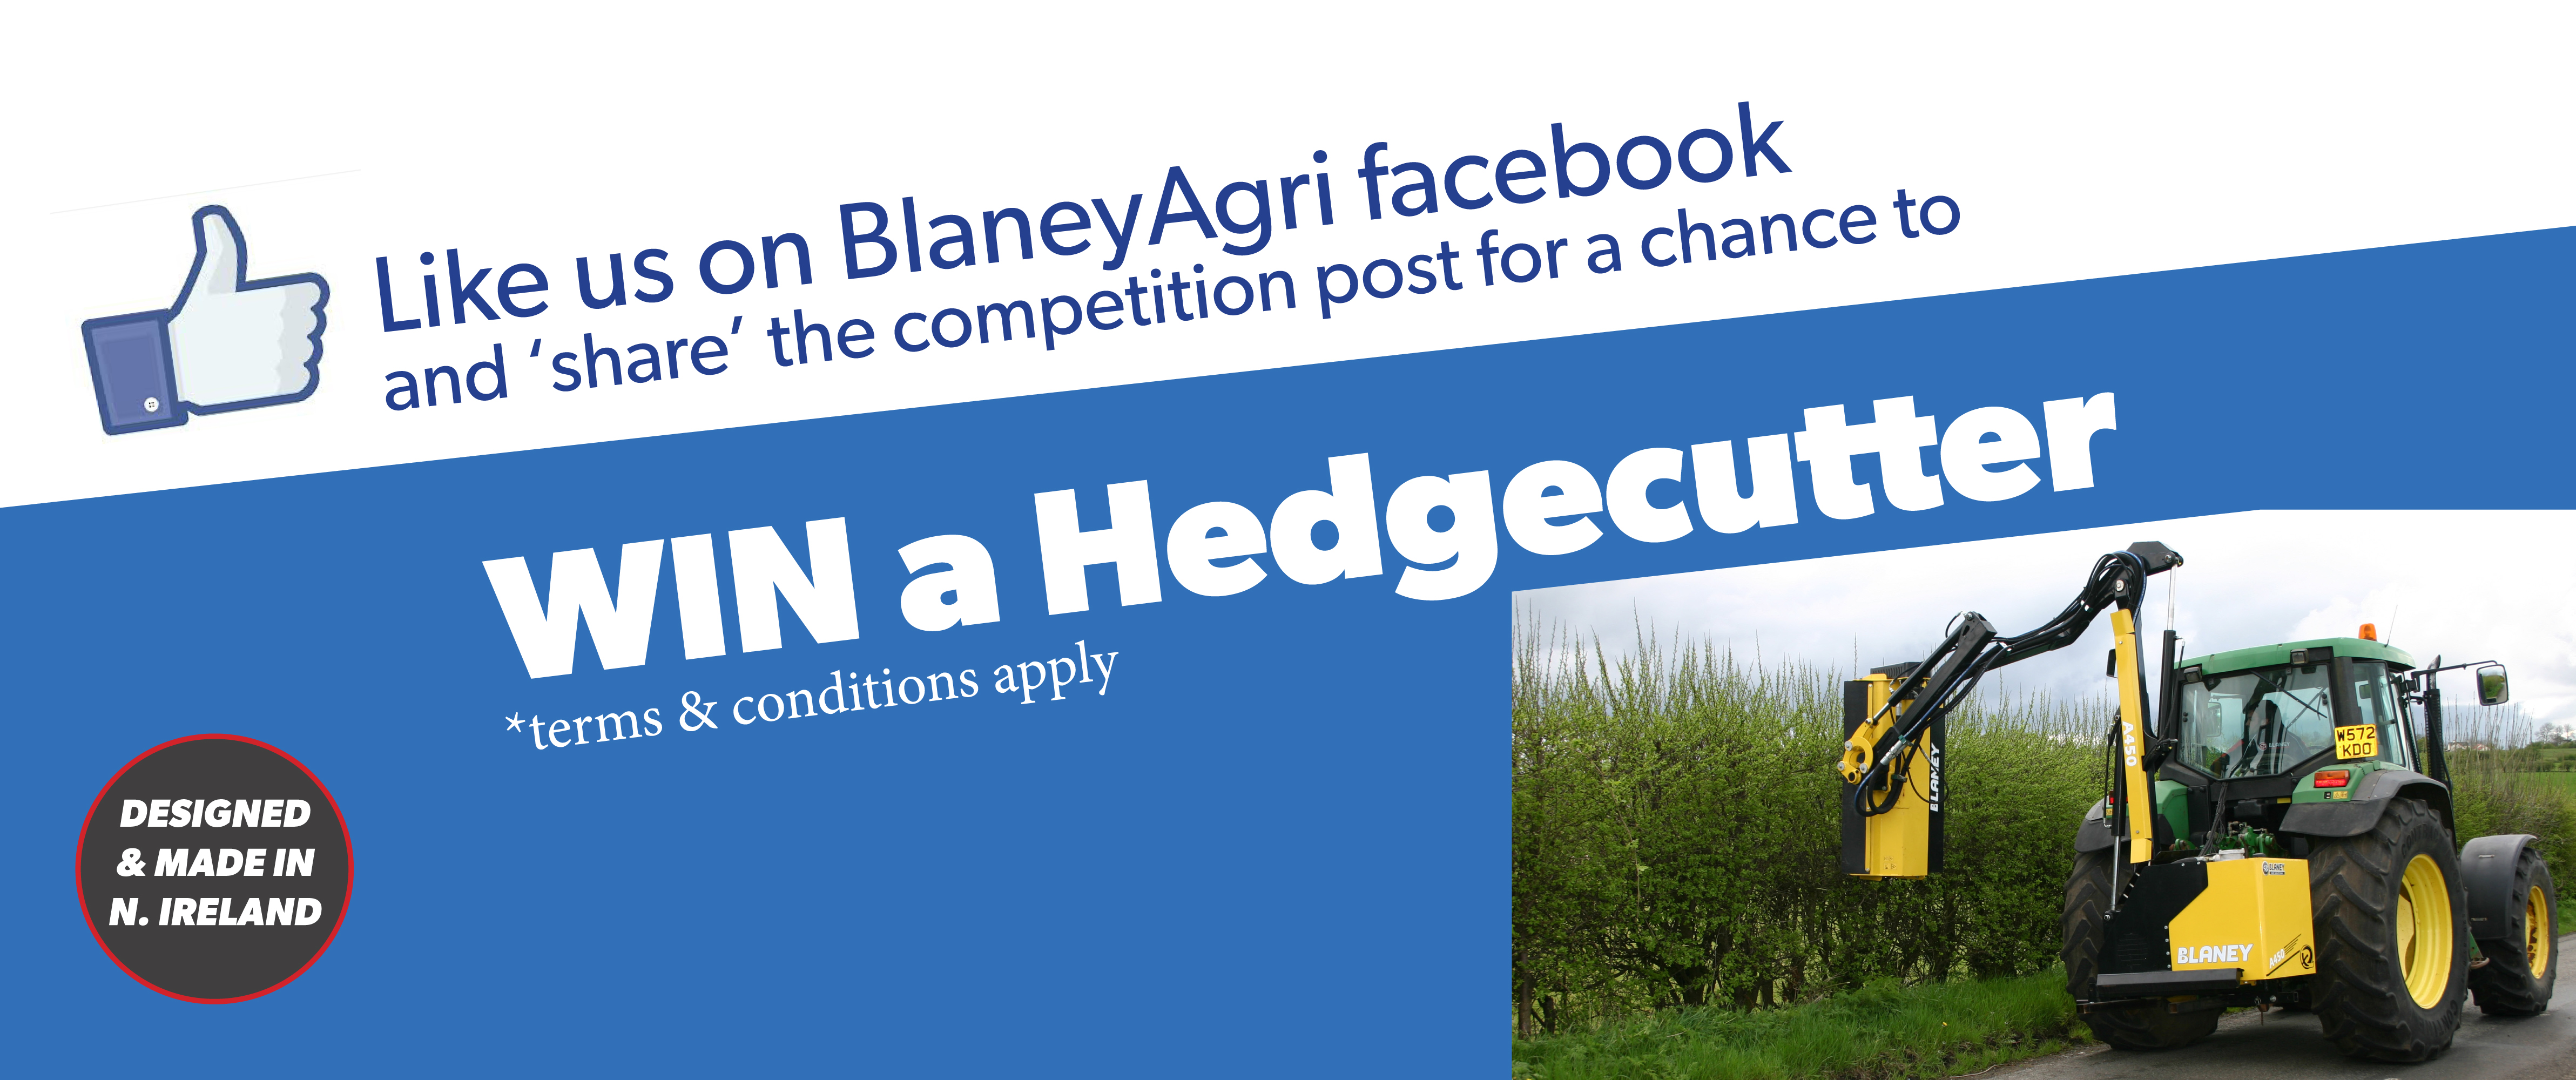 Win a Hedgecutter